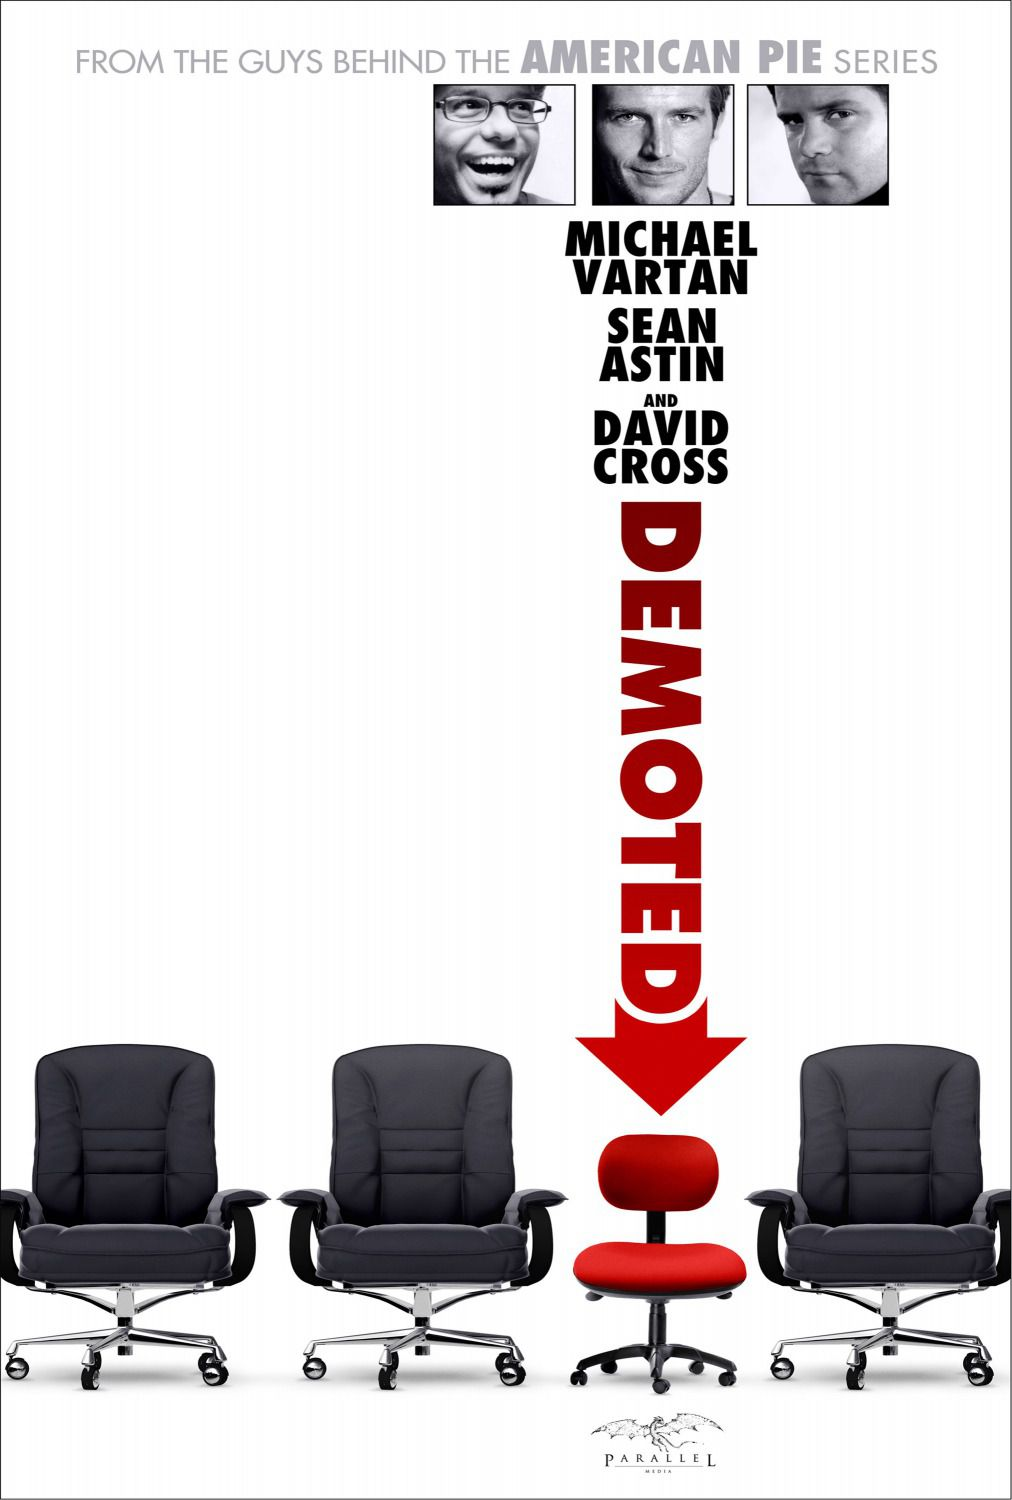 Demoted - Michael Vartan, Sean Astin, David Cross - film poster